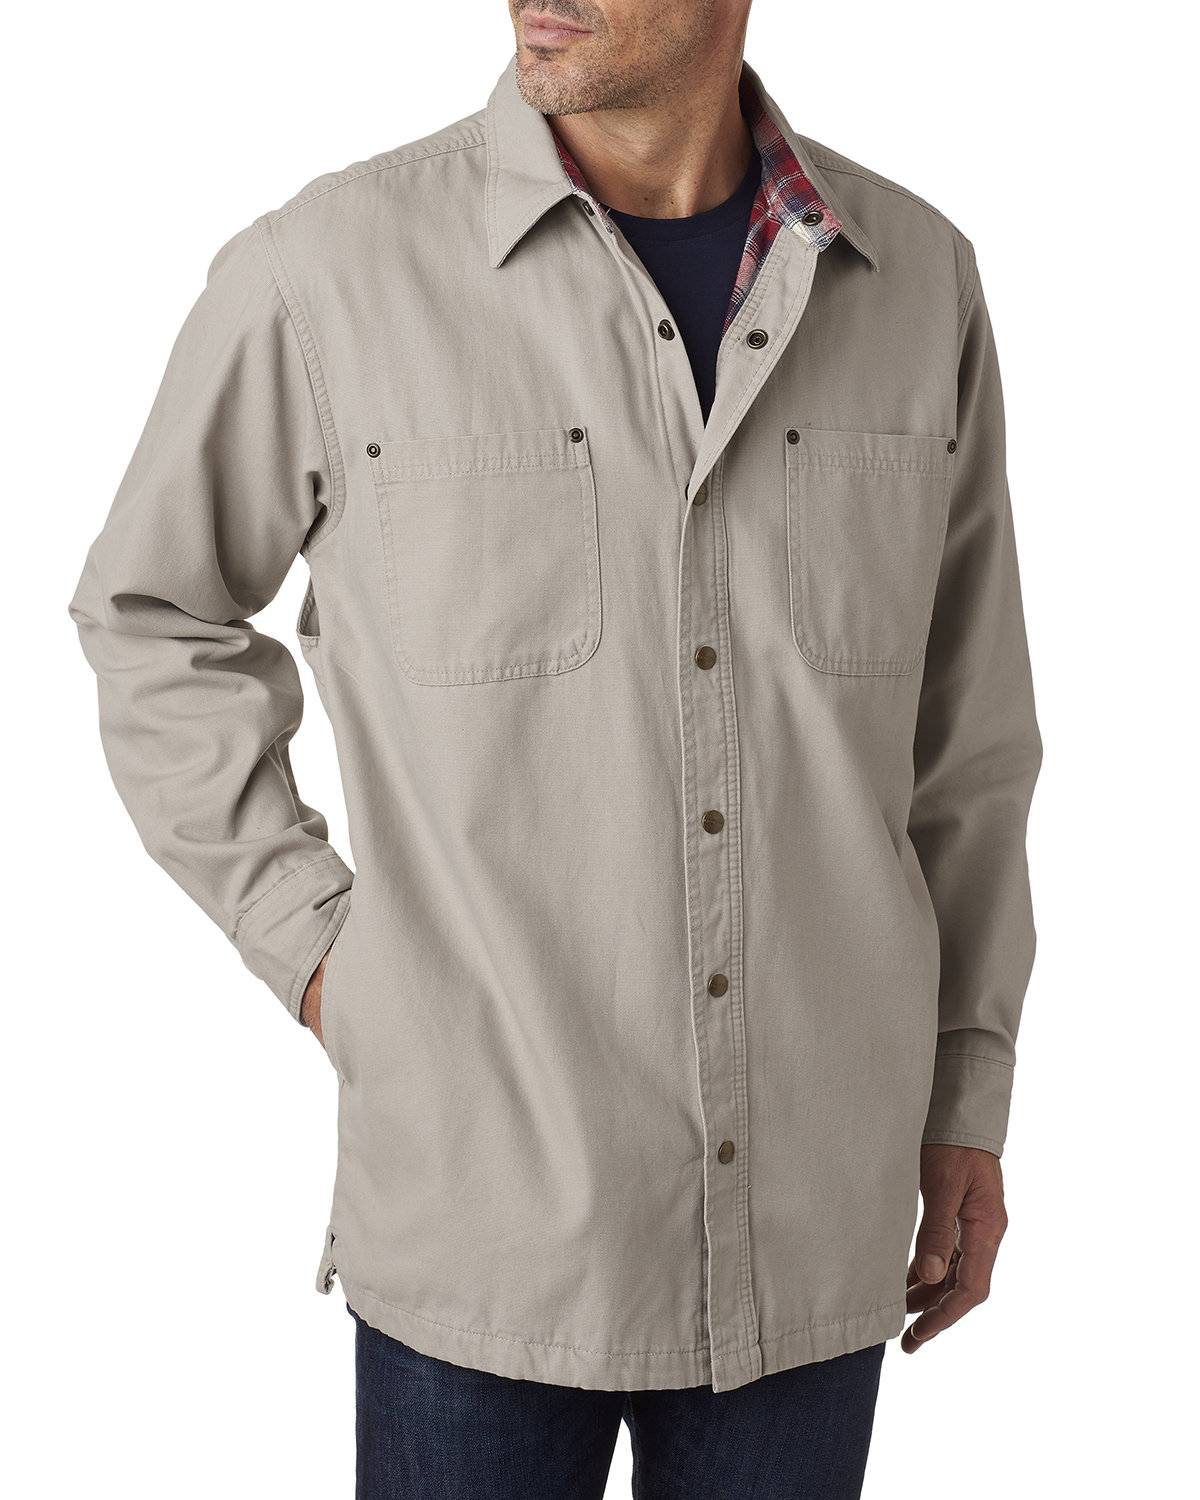 Backpacker Men's Canvas Shirt Jacket with Flannel Lining STONE